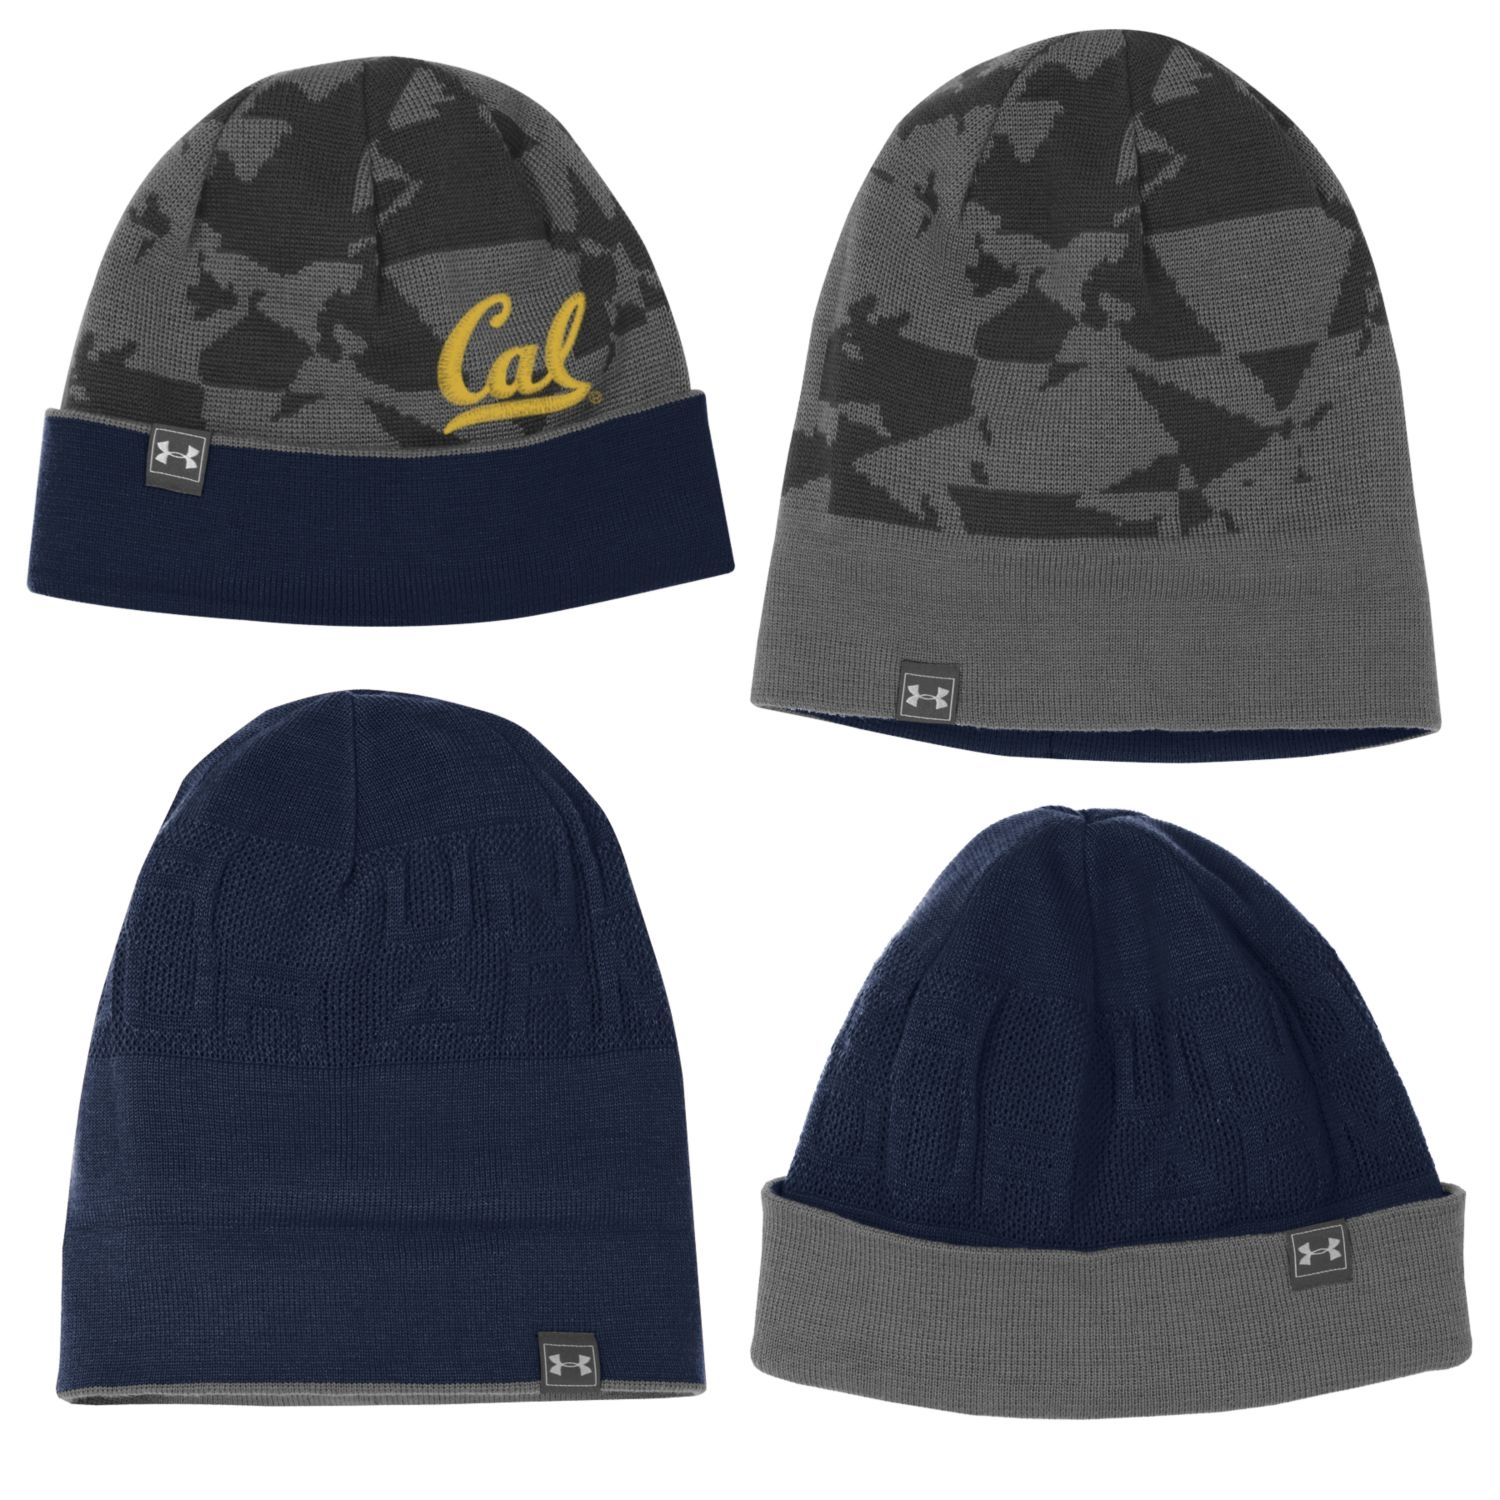 Cal Bears Under Armour Men's 4 in 1 Freestyle Beanie